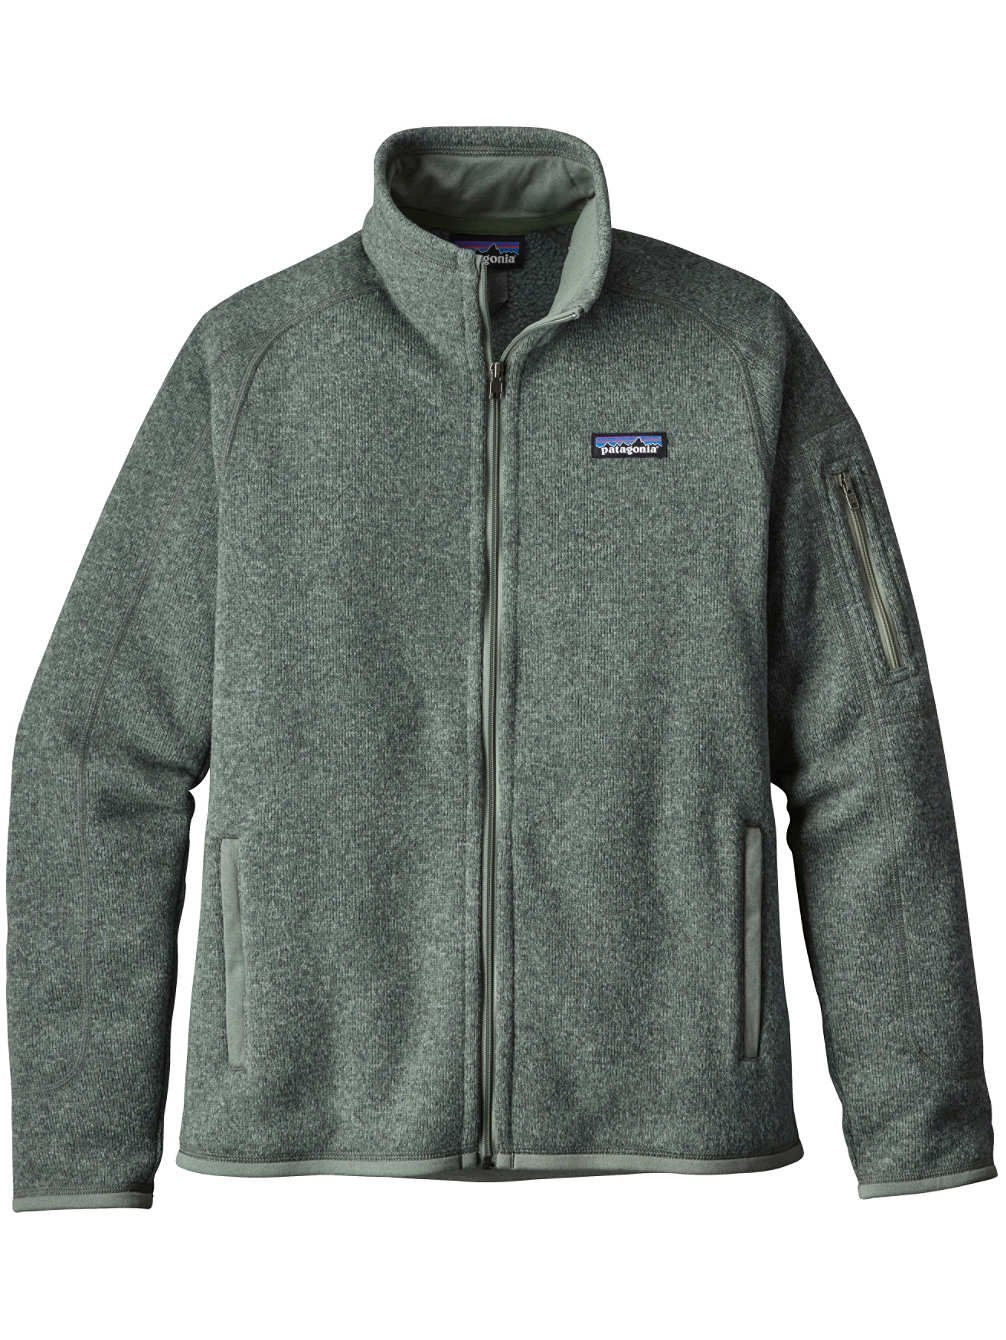 Patagonia Women Better Sweater Jacket - Hemlock Green (X-Small) by Patagonia